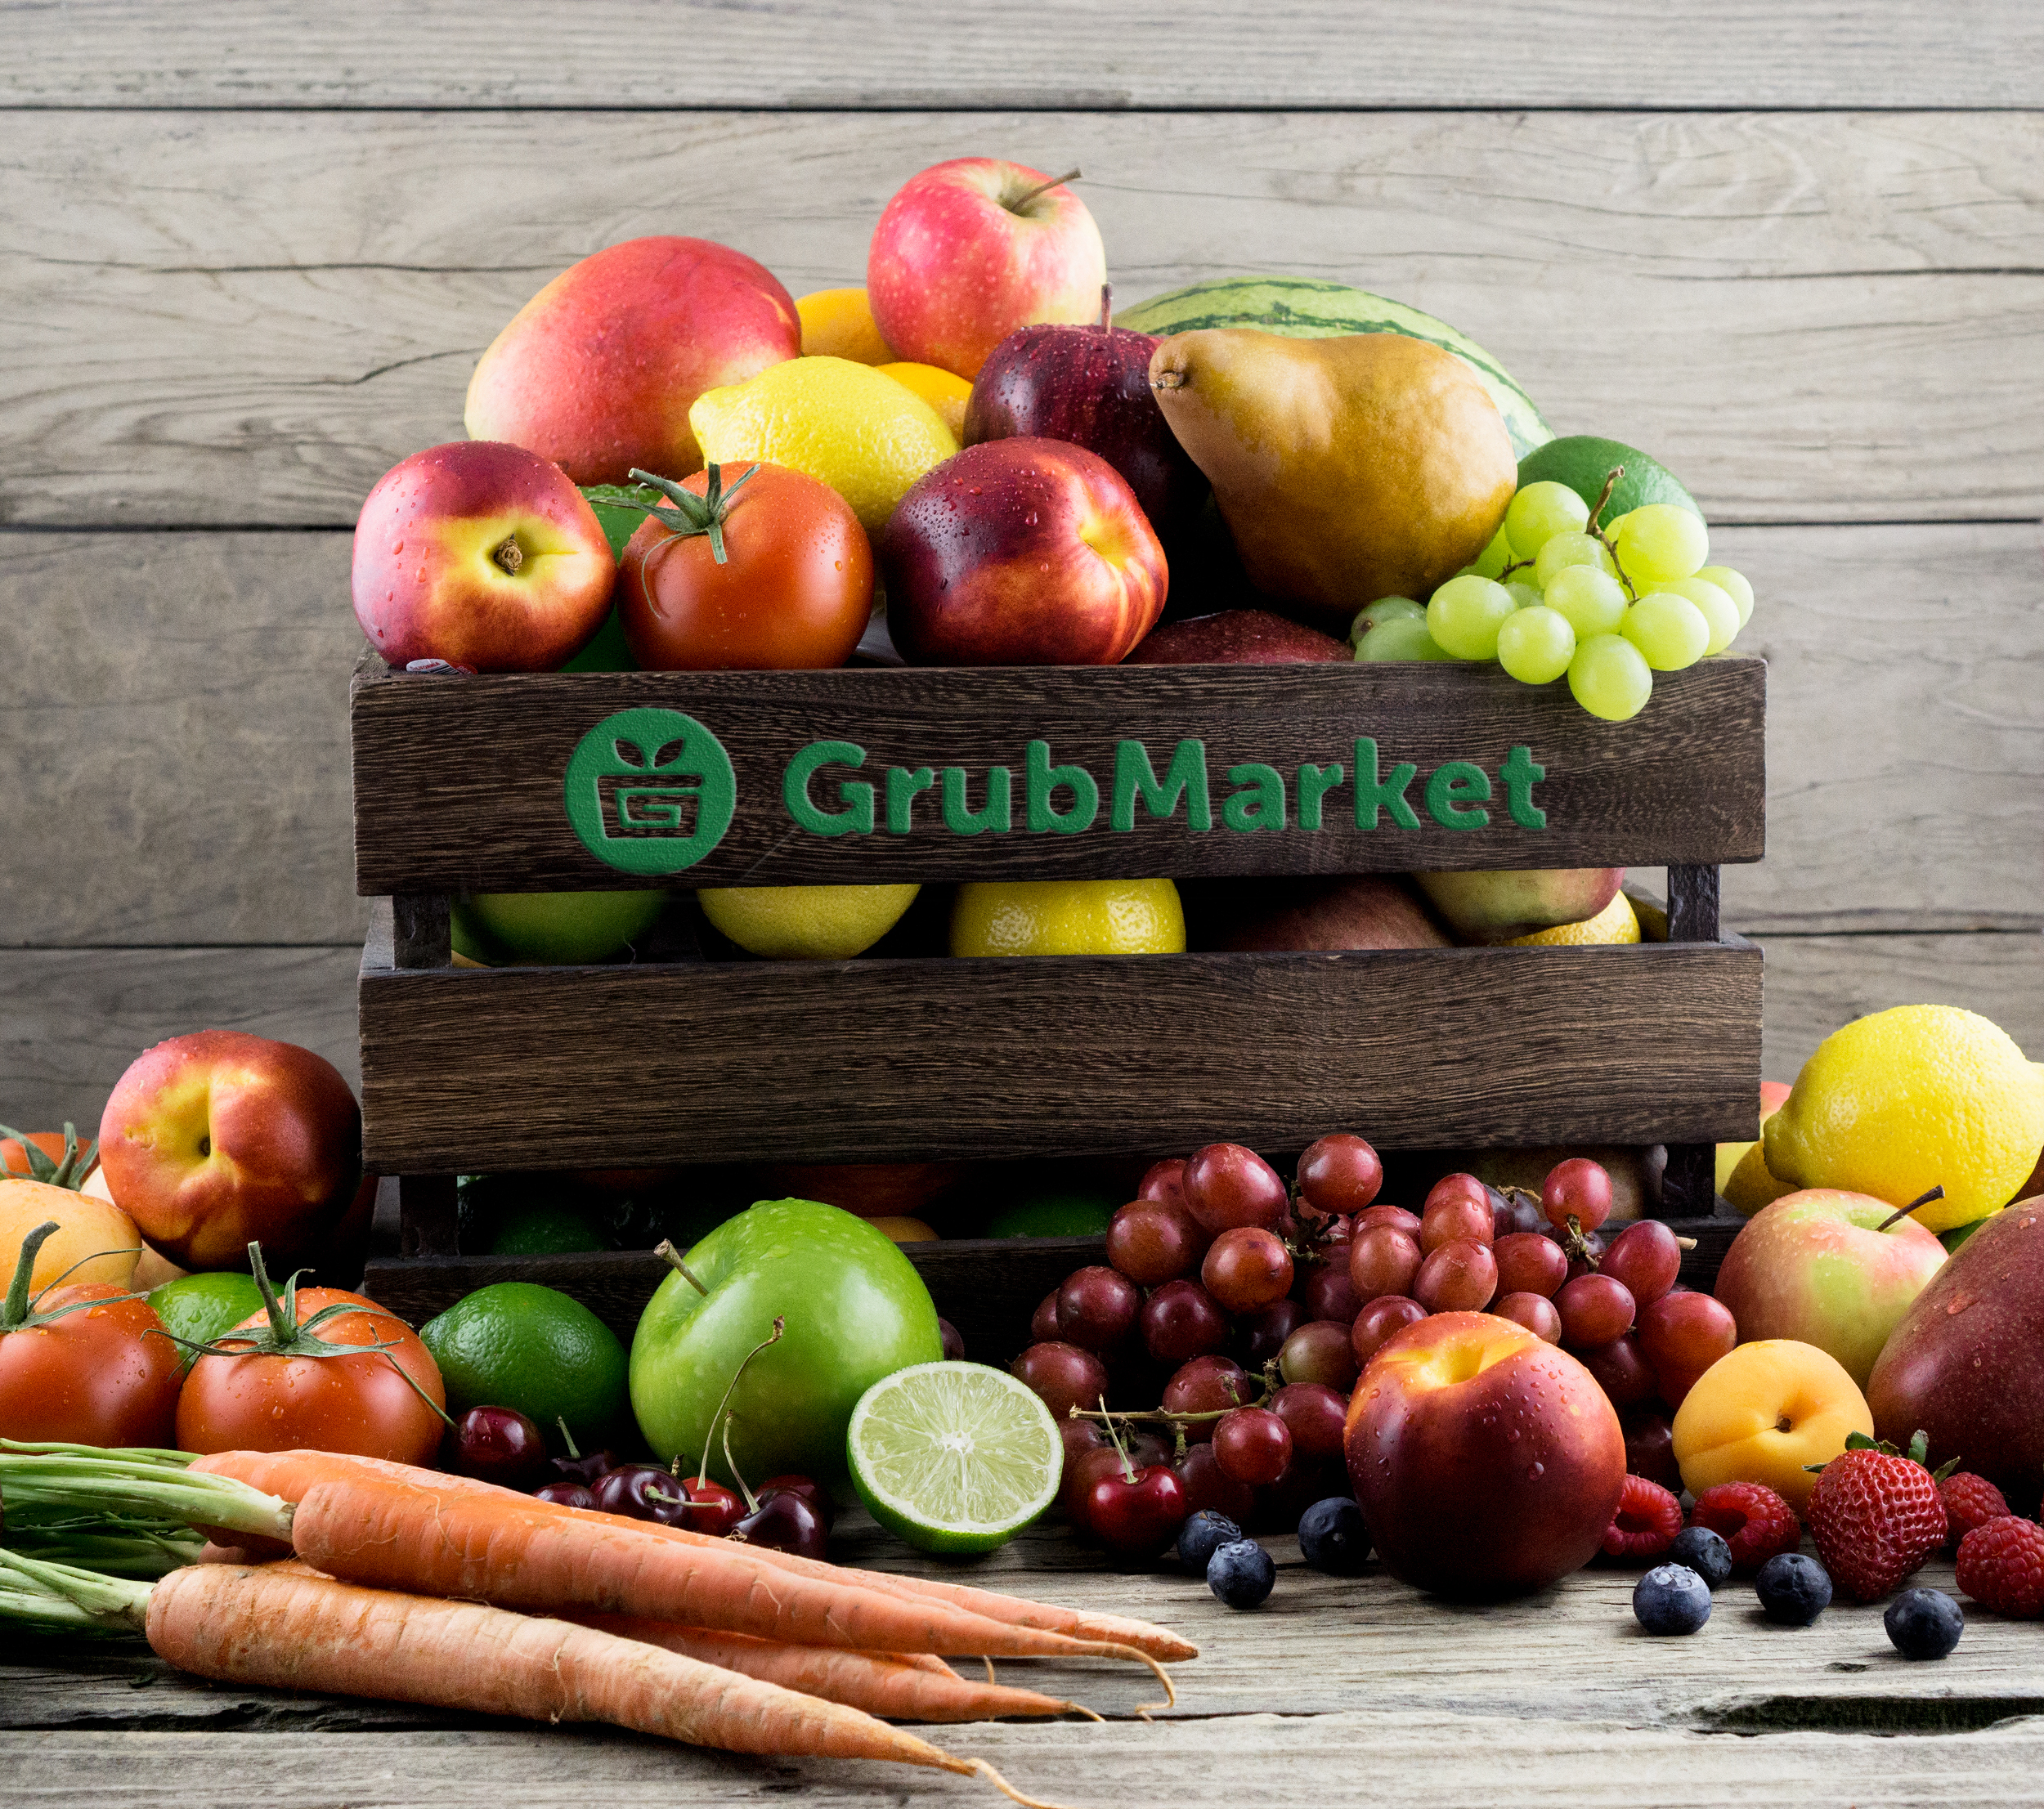 GrubMarket raises $25M more for its farm-to-table food delivery